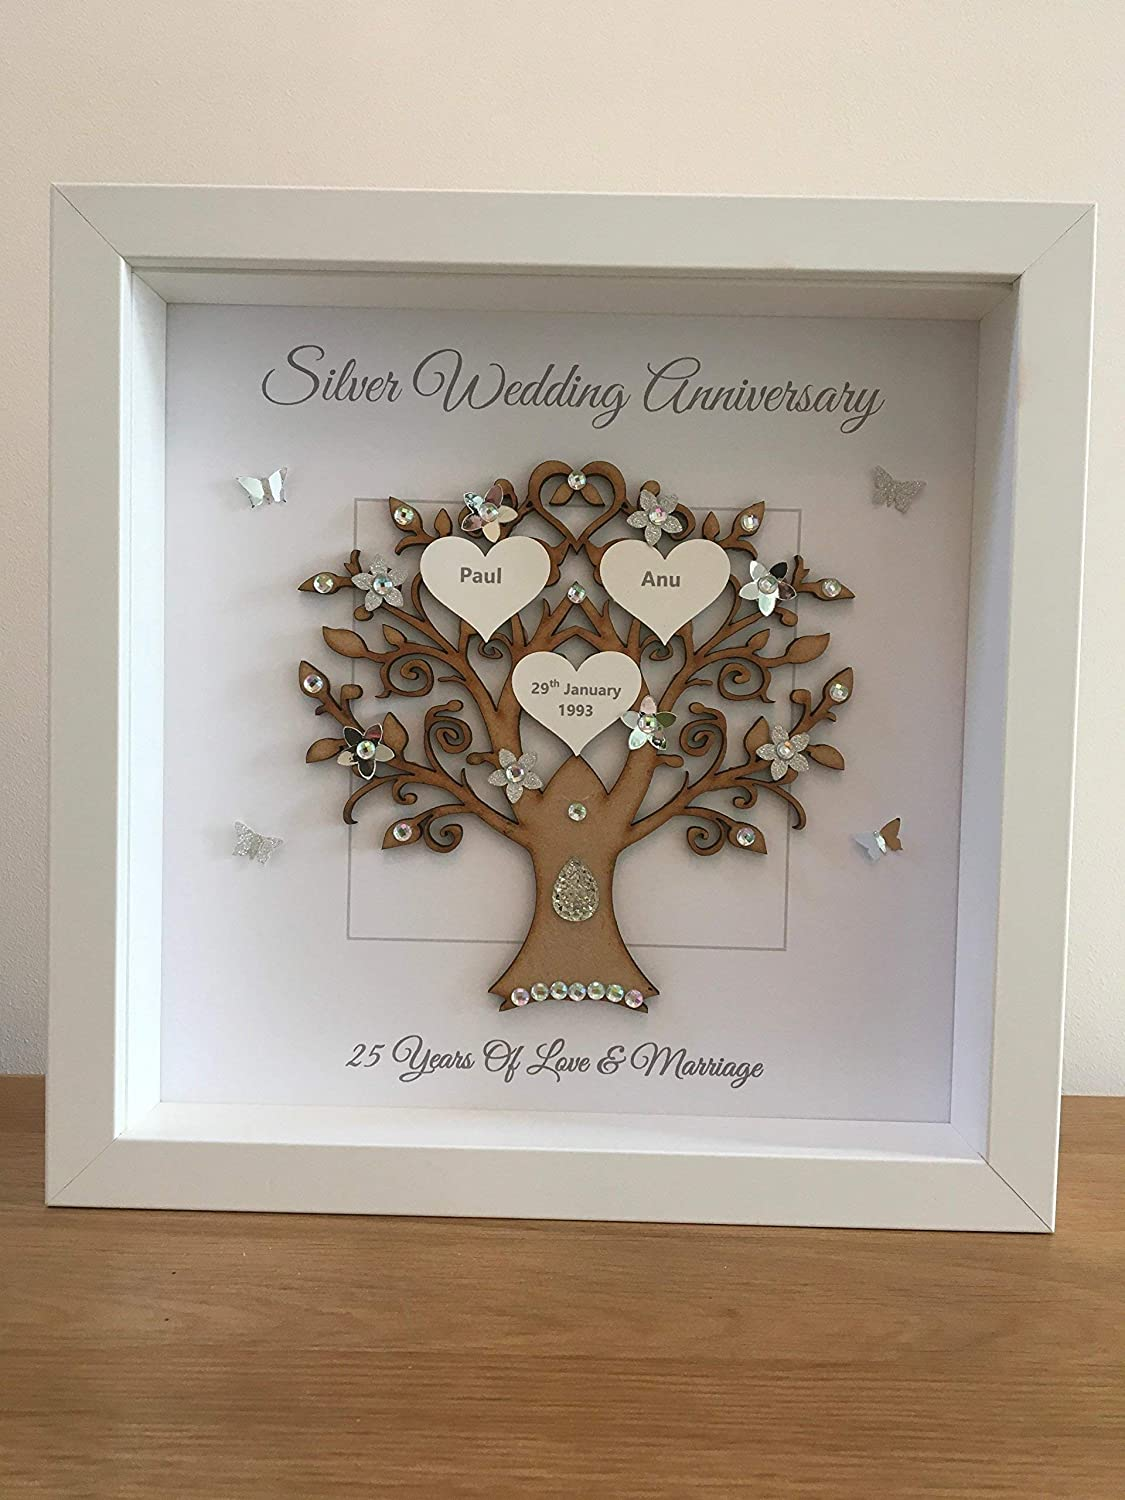 25th gift frame married in 1993 Silver wedding anniversary days. 25 years